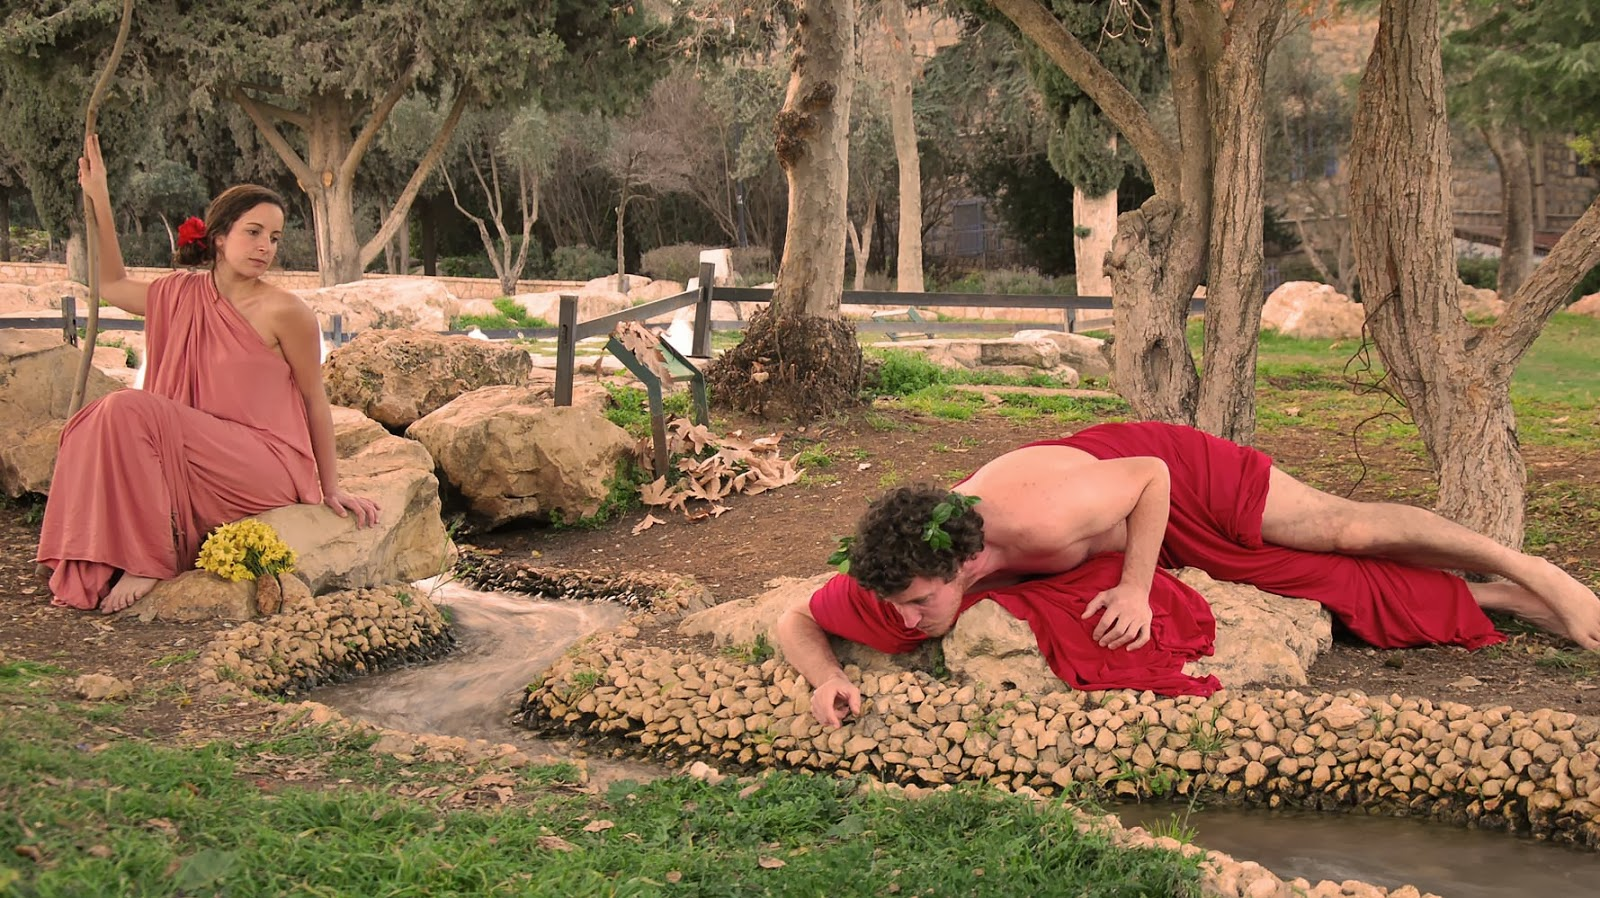 echo and narcissus Narcissus and echo, the house of cadmus [339] tiresias' fame of  prophecy was spread through all the cities of aonia, for his unerring answers  unto.